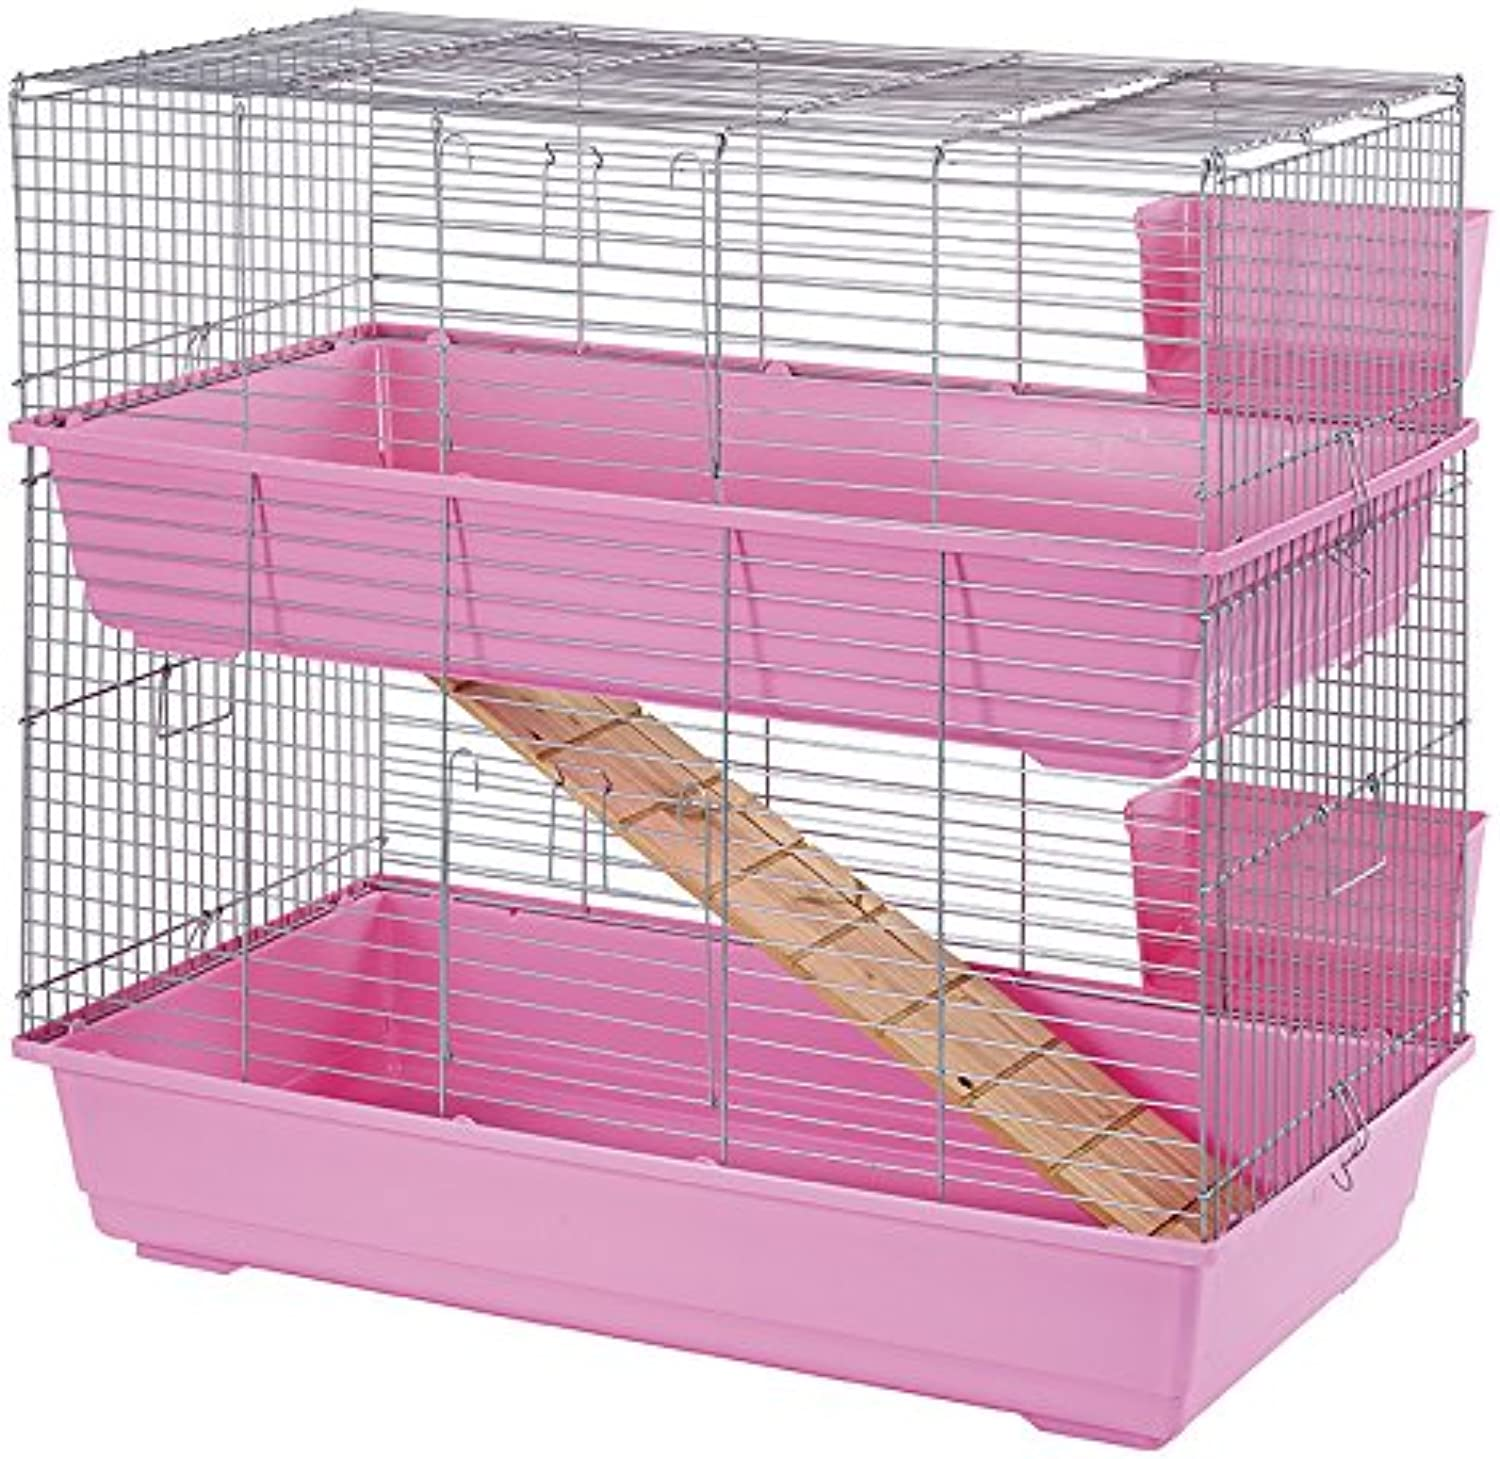 Classic Ritzo Double Cage 100x54x44cm (Pack of 2)